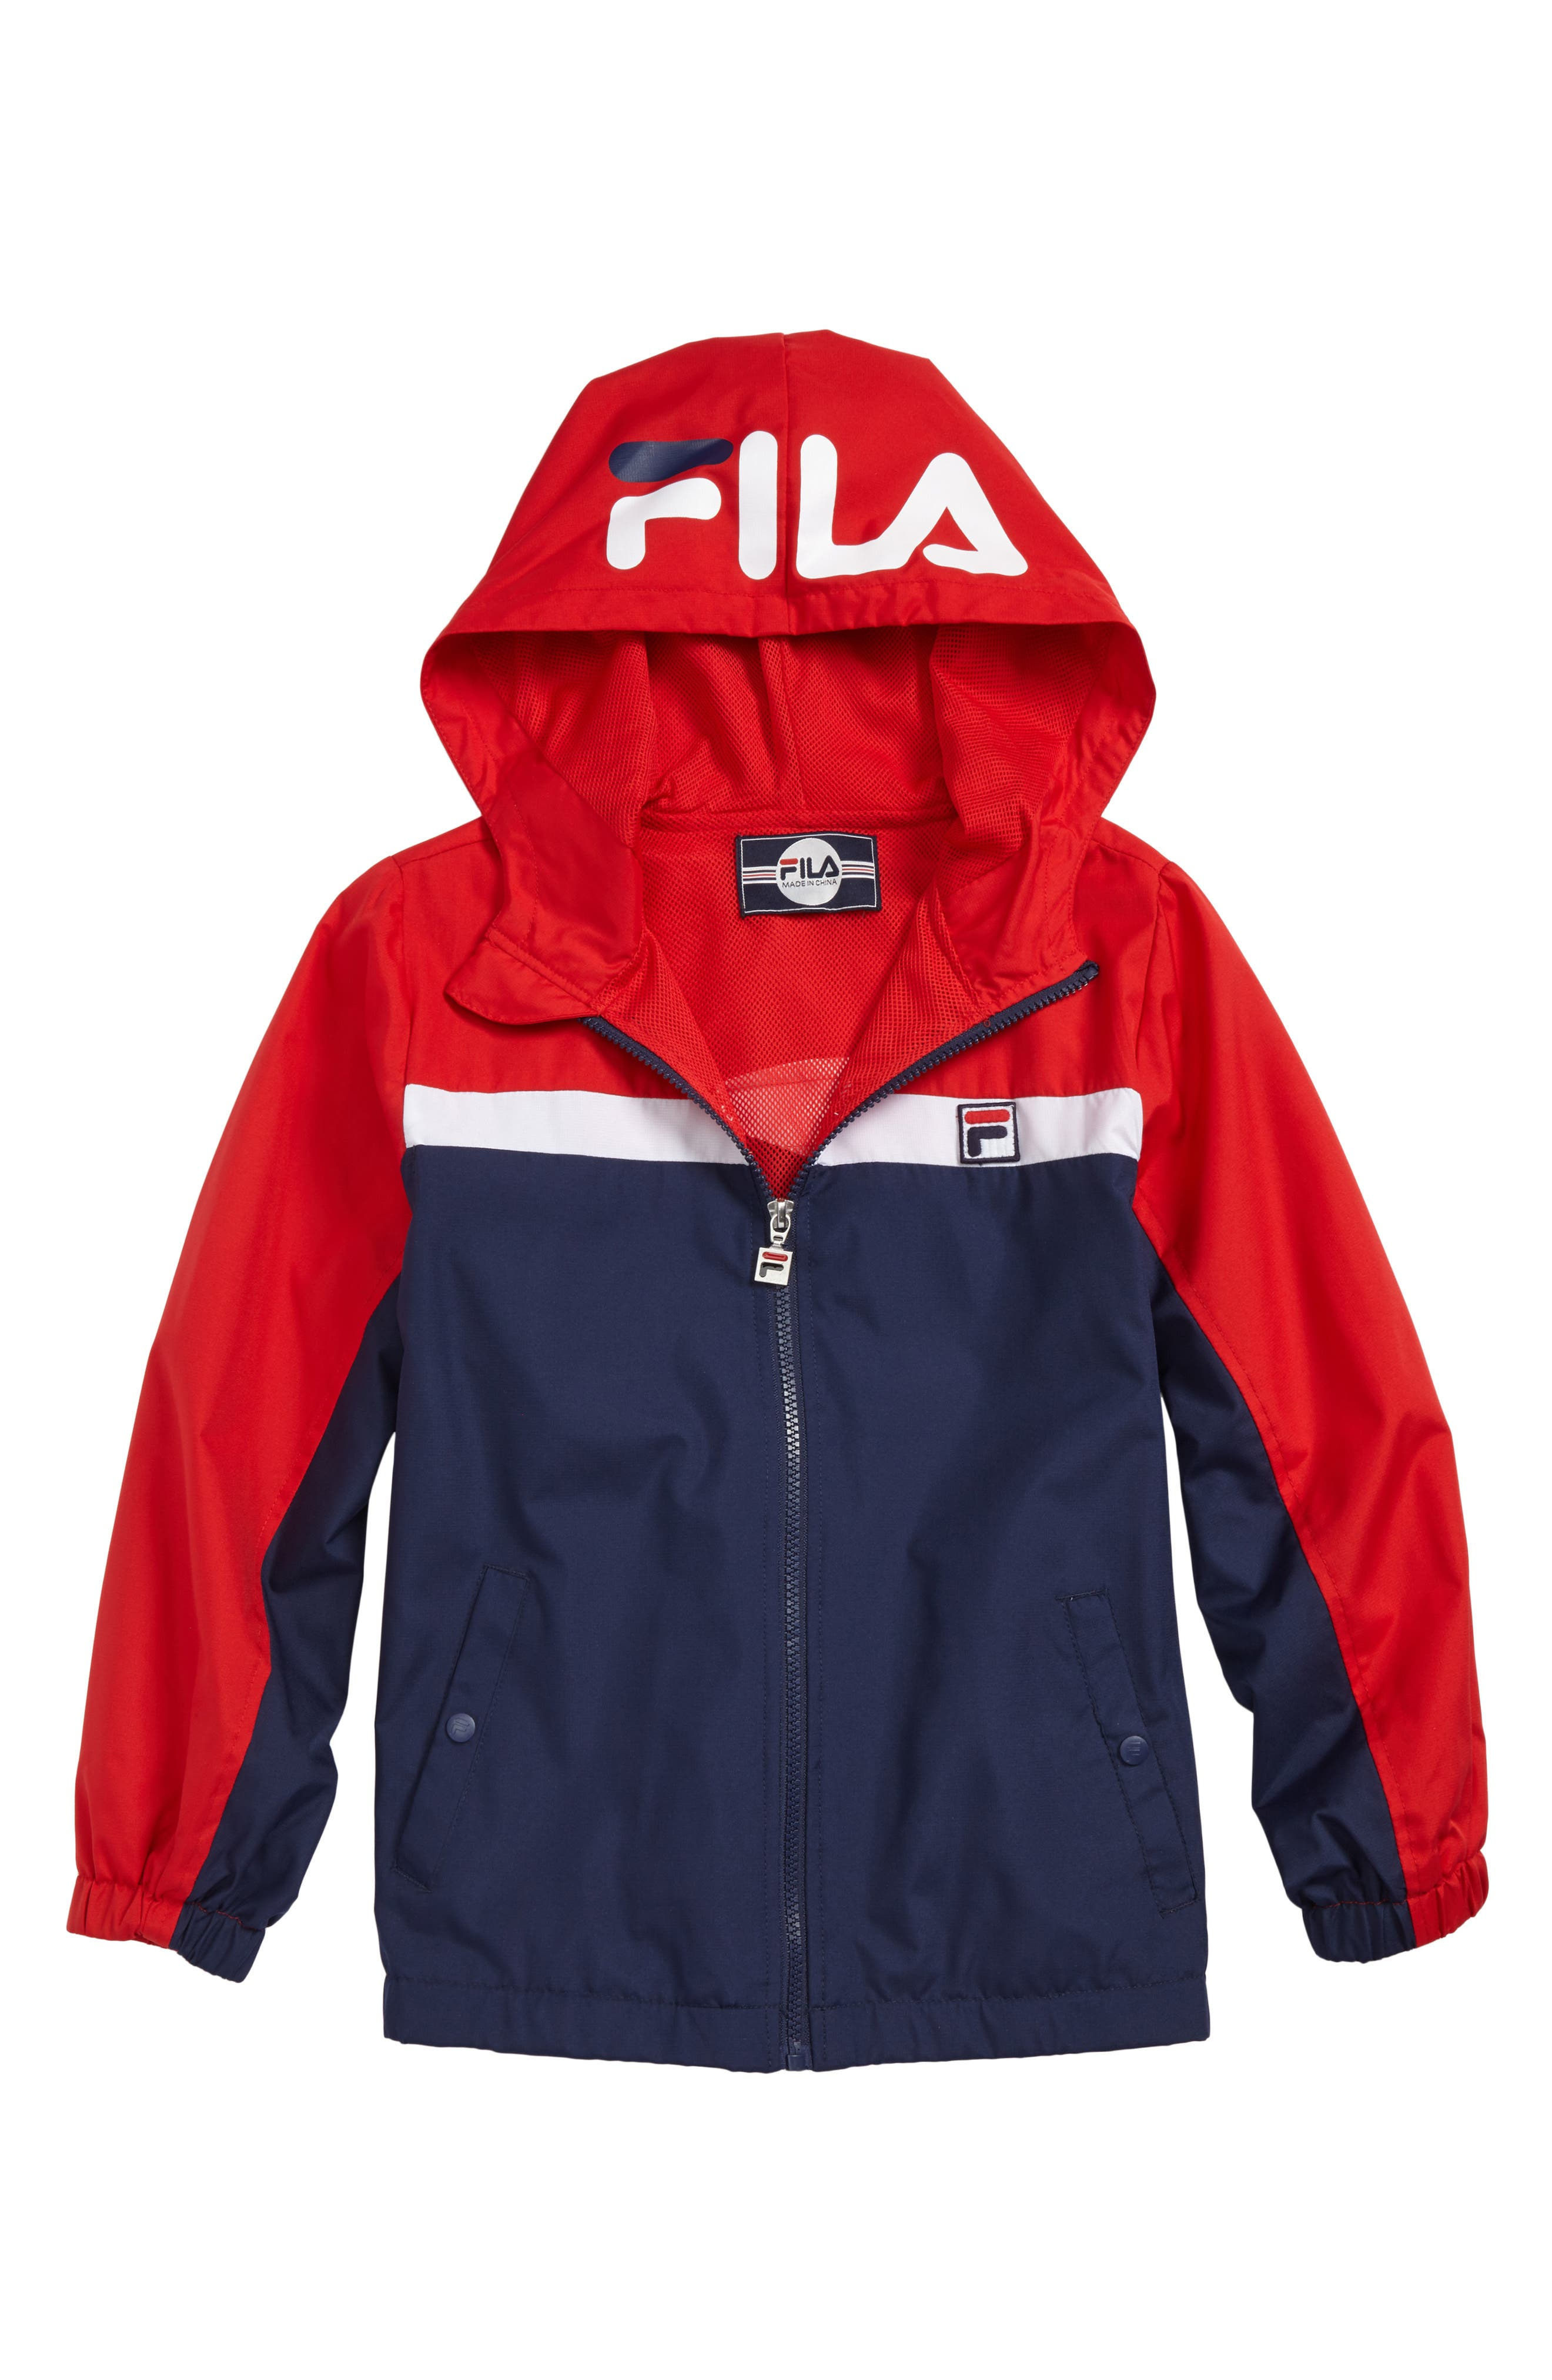 Colorblock Hooded Windbreaker,                         Main,                         color, Navy/ Red/ White